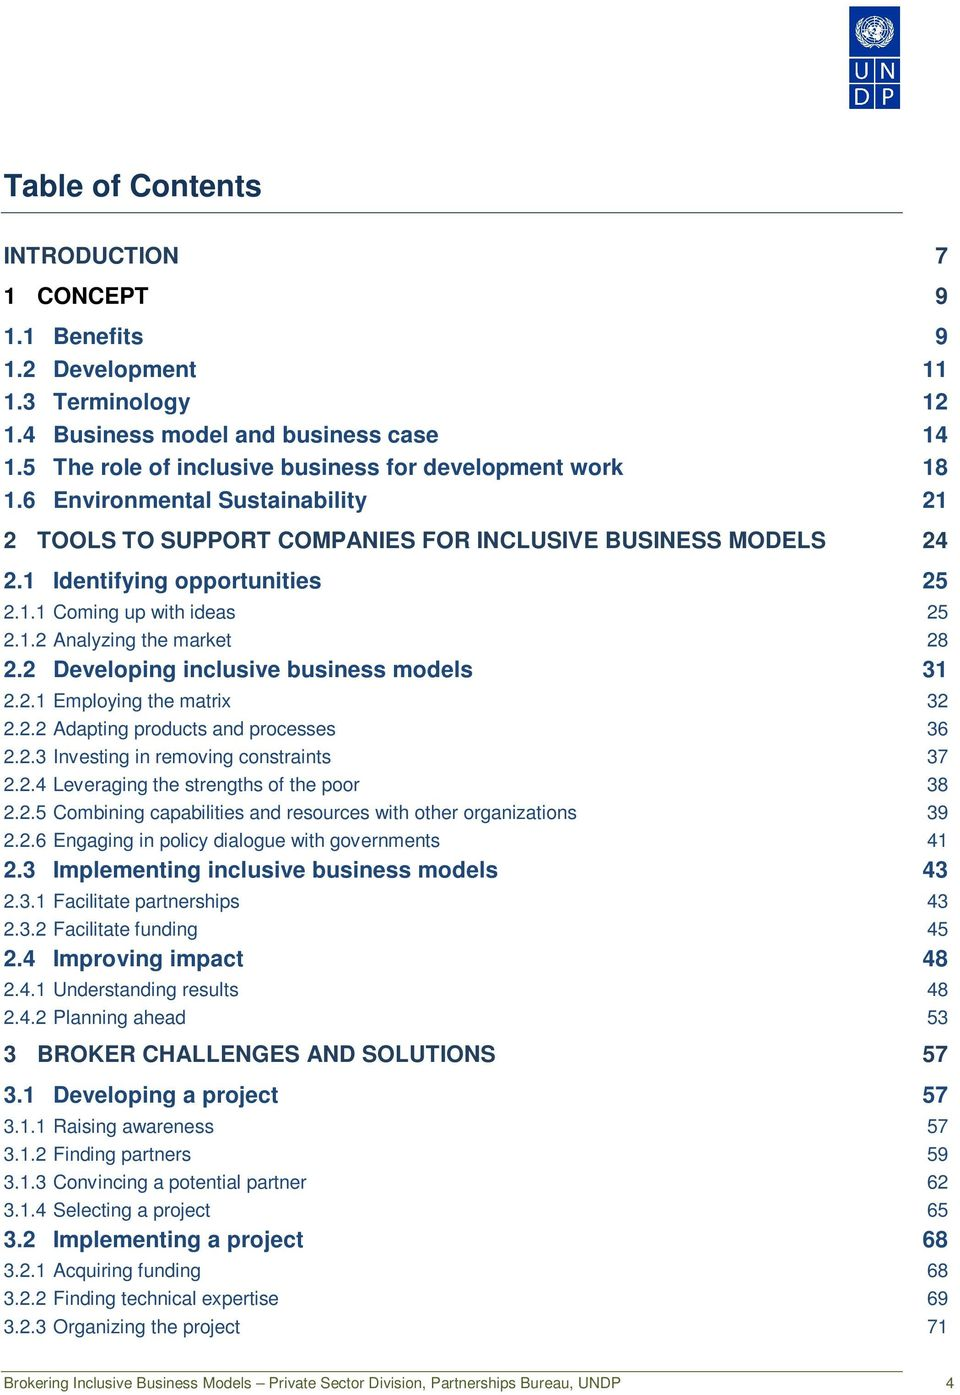 2 Developing inclusive business models 31 2.2.1 Employing the matrix 32 2.2.2 Adapting products and processes 36 2.2.3 Investing in removing constraints 37 2.2.4 Leveraging the strengths of the poor 38 2.